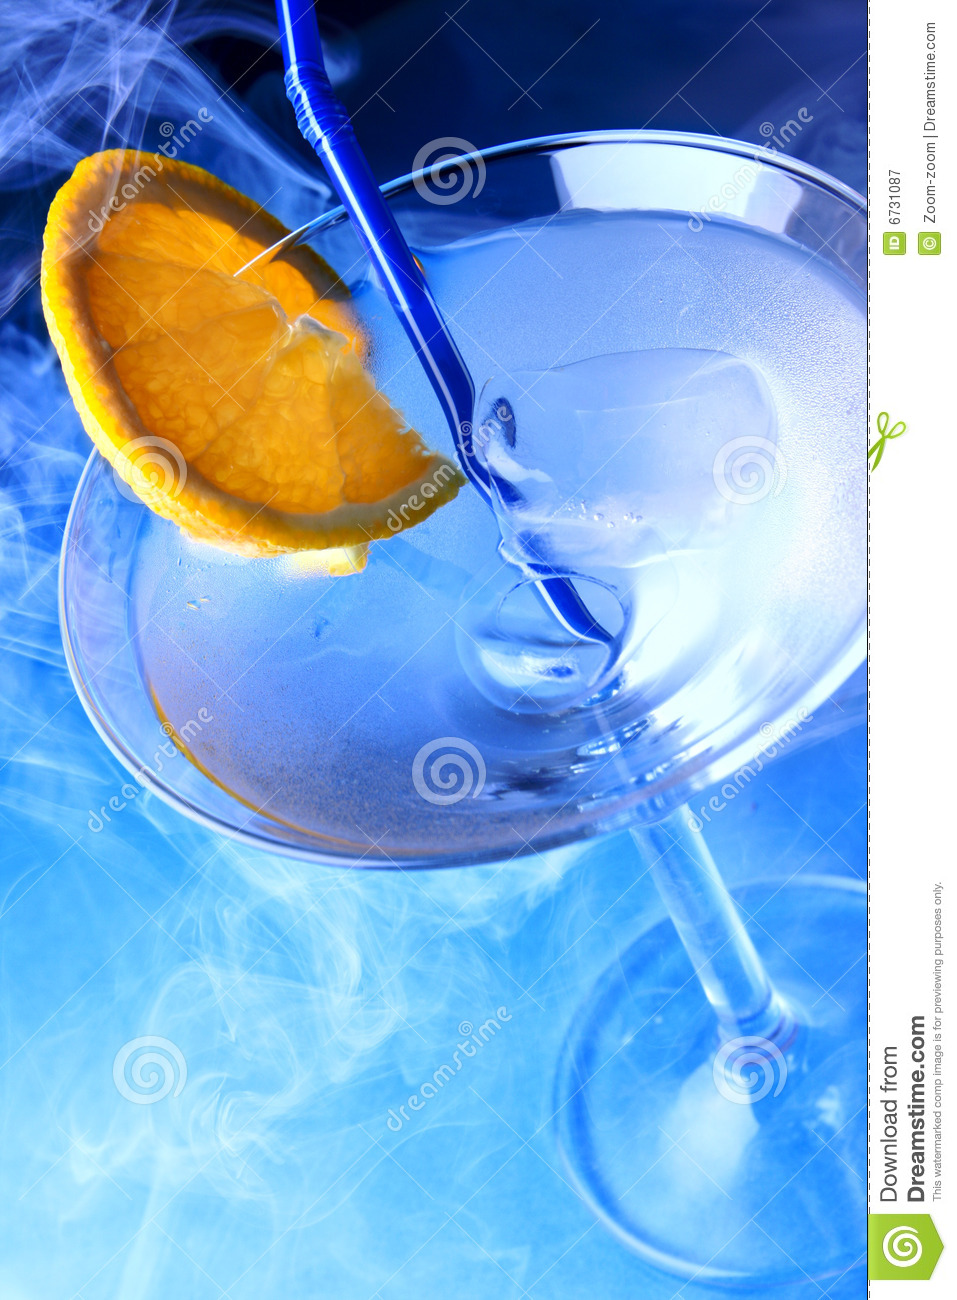 Cocktail glass with orange slice royalty free stock for Orange and blue cocktails